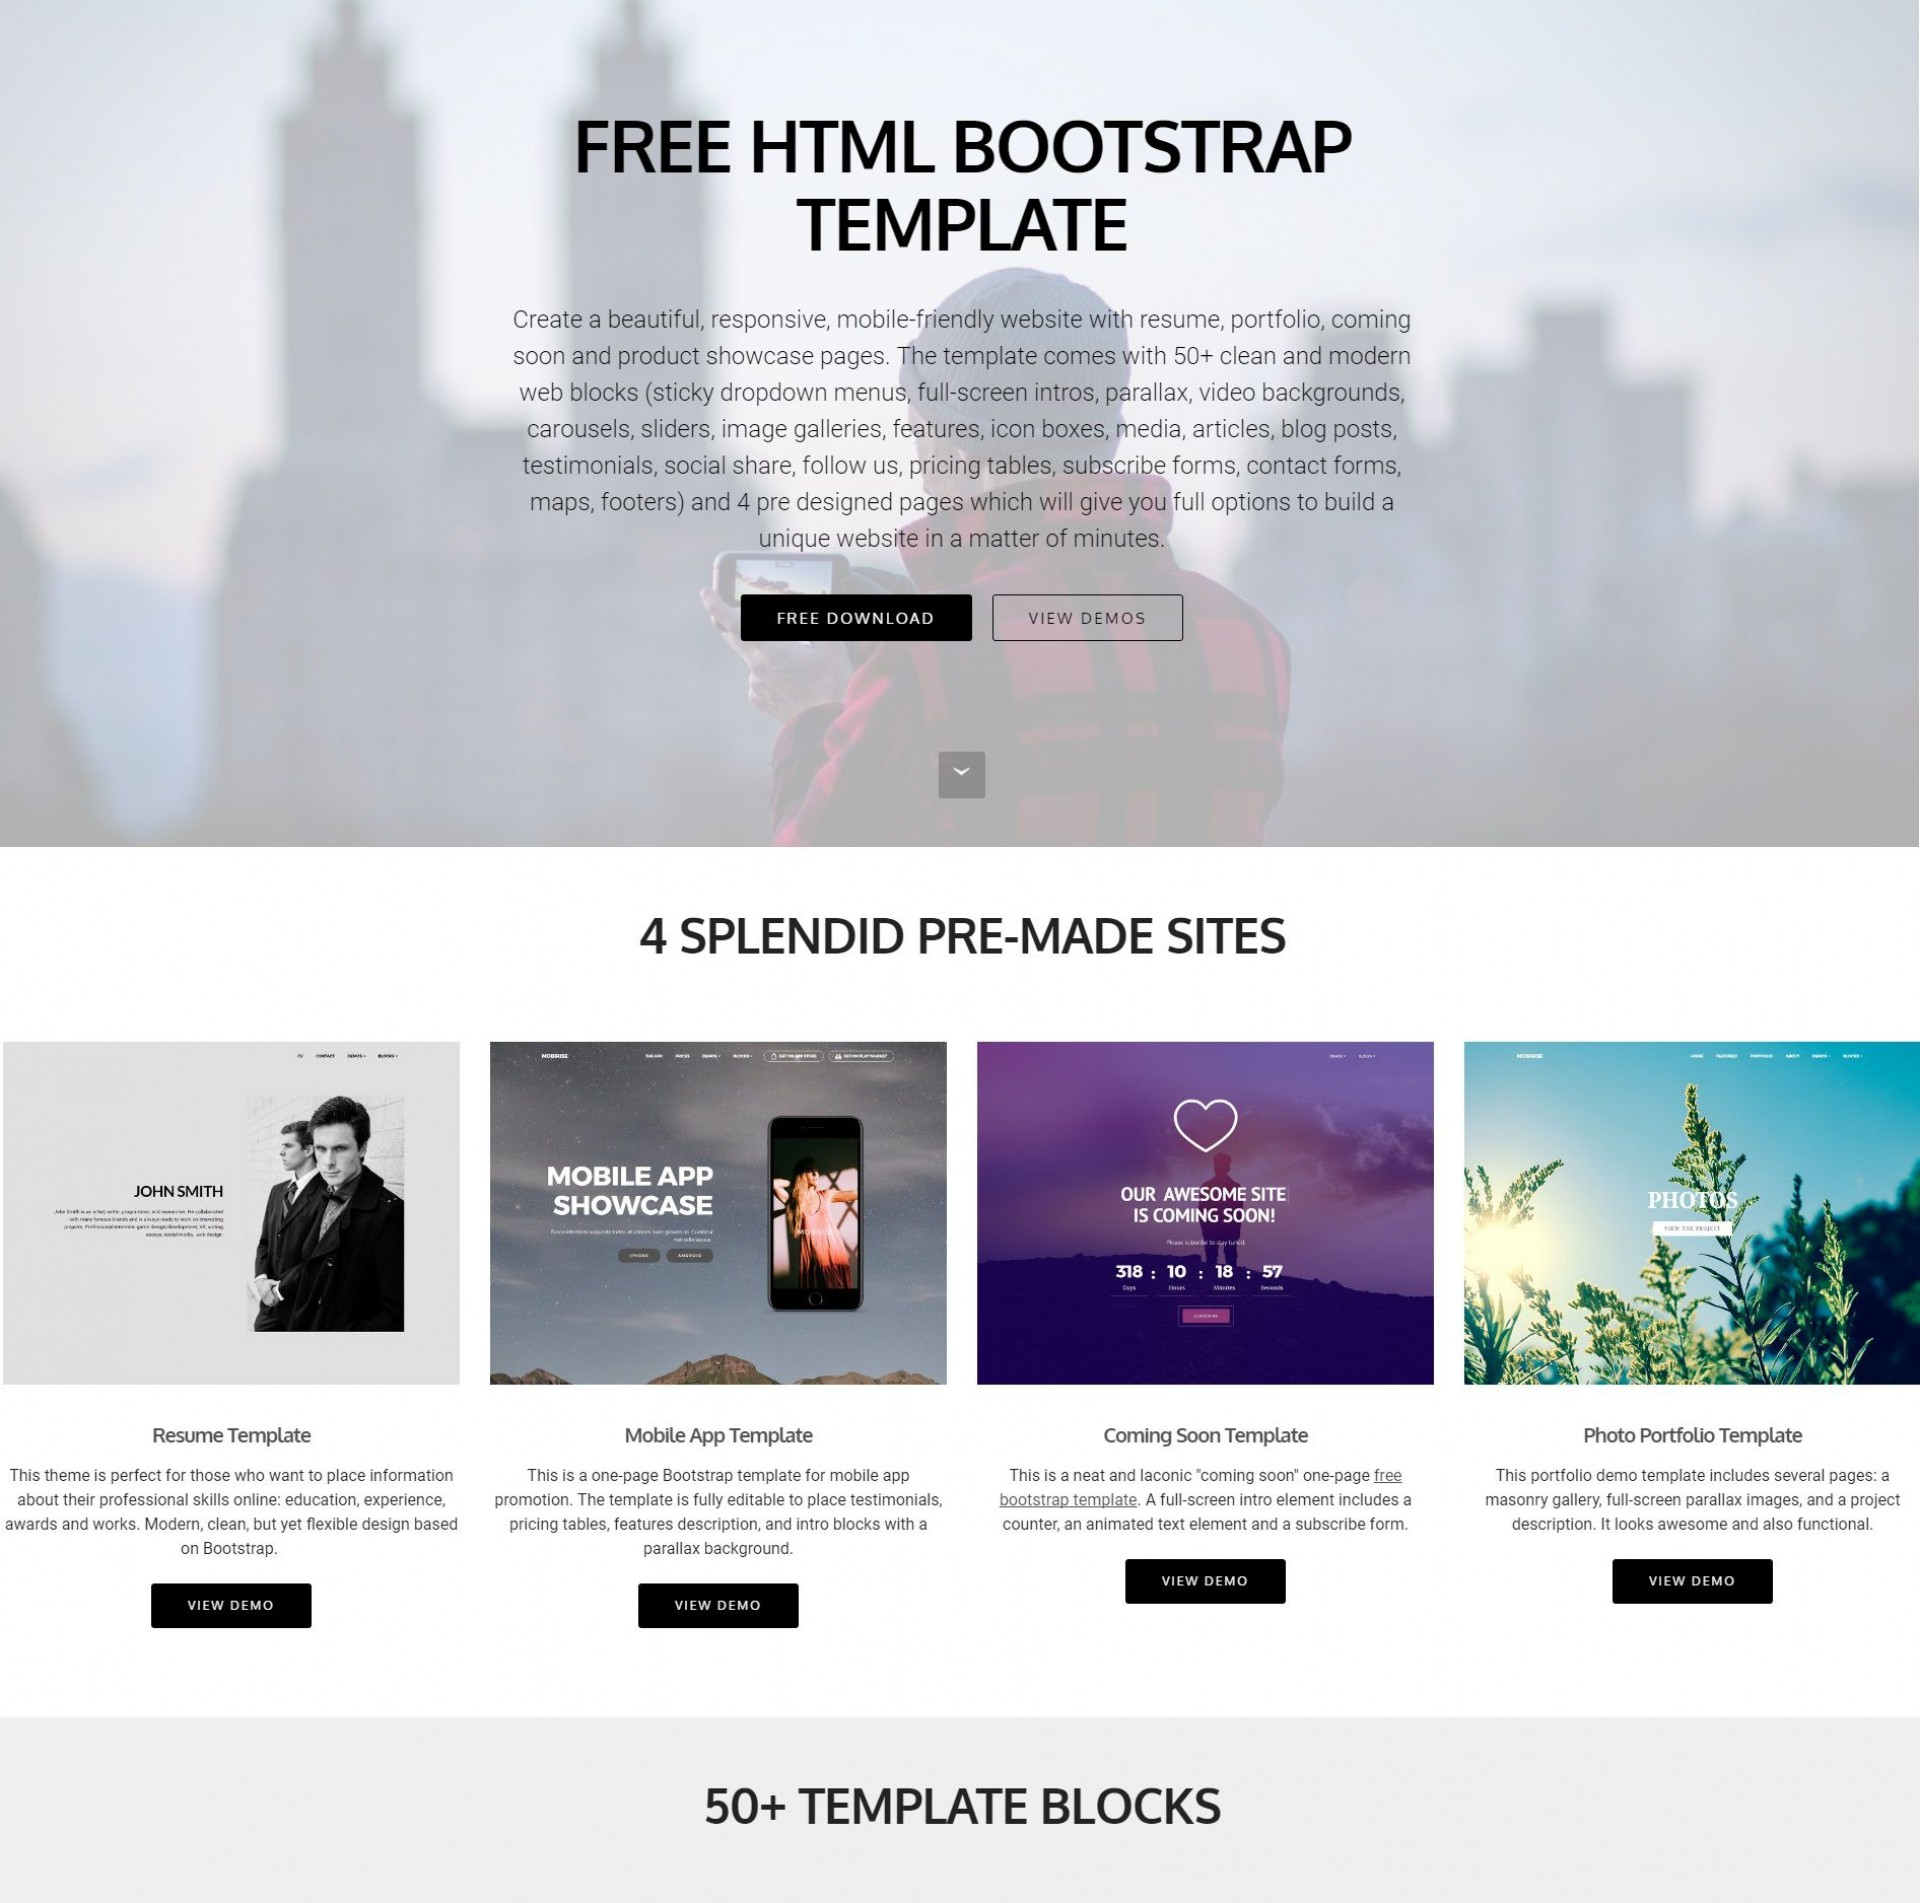 006 Awful Free Bootstrap Website Template Concept  Templates Responsive With Slider Download For Education Busines1920